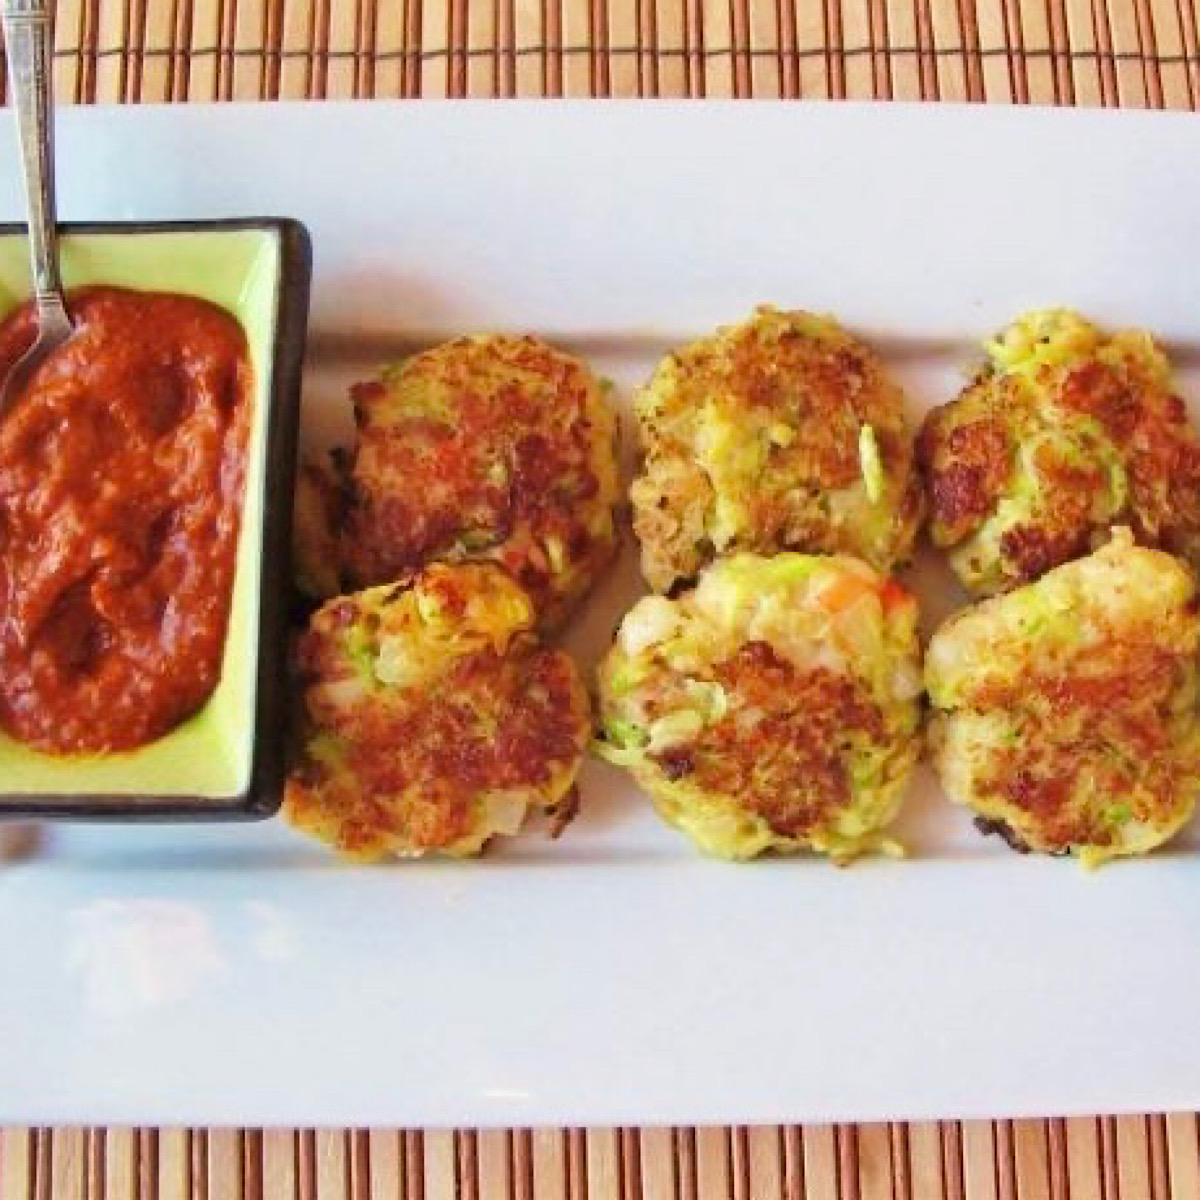 Zucchini fritters with harissa sauce on the side